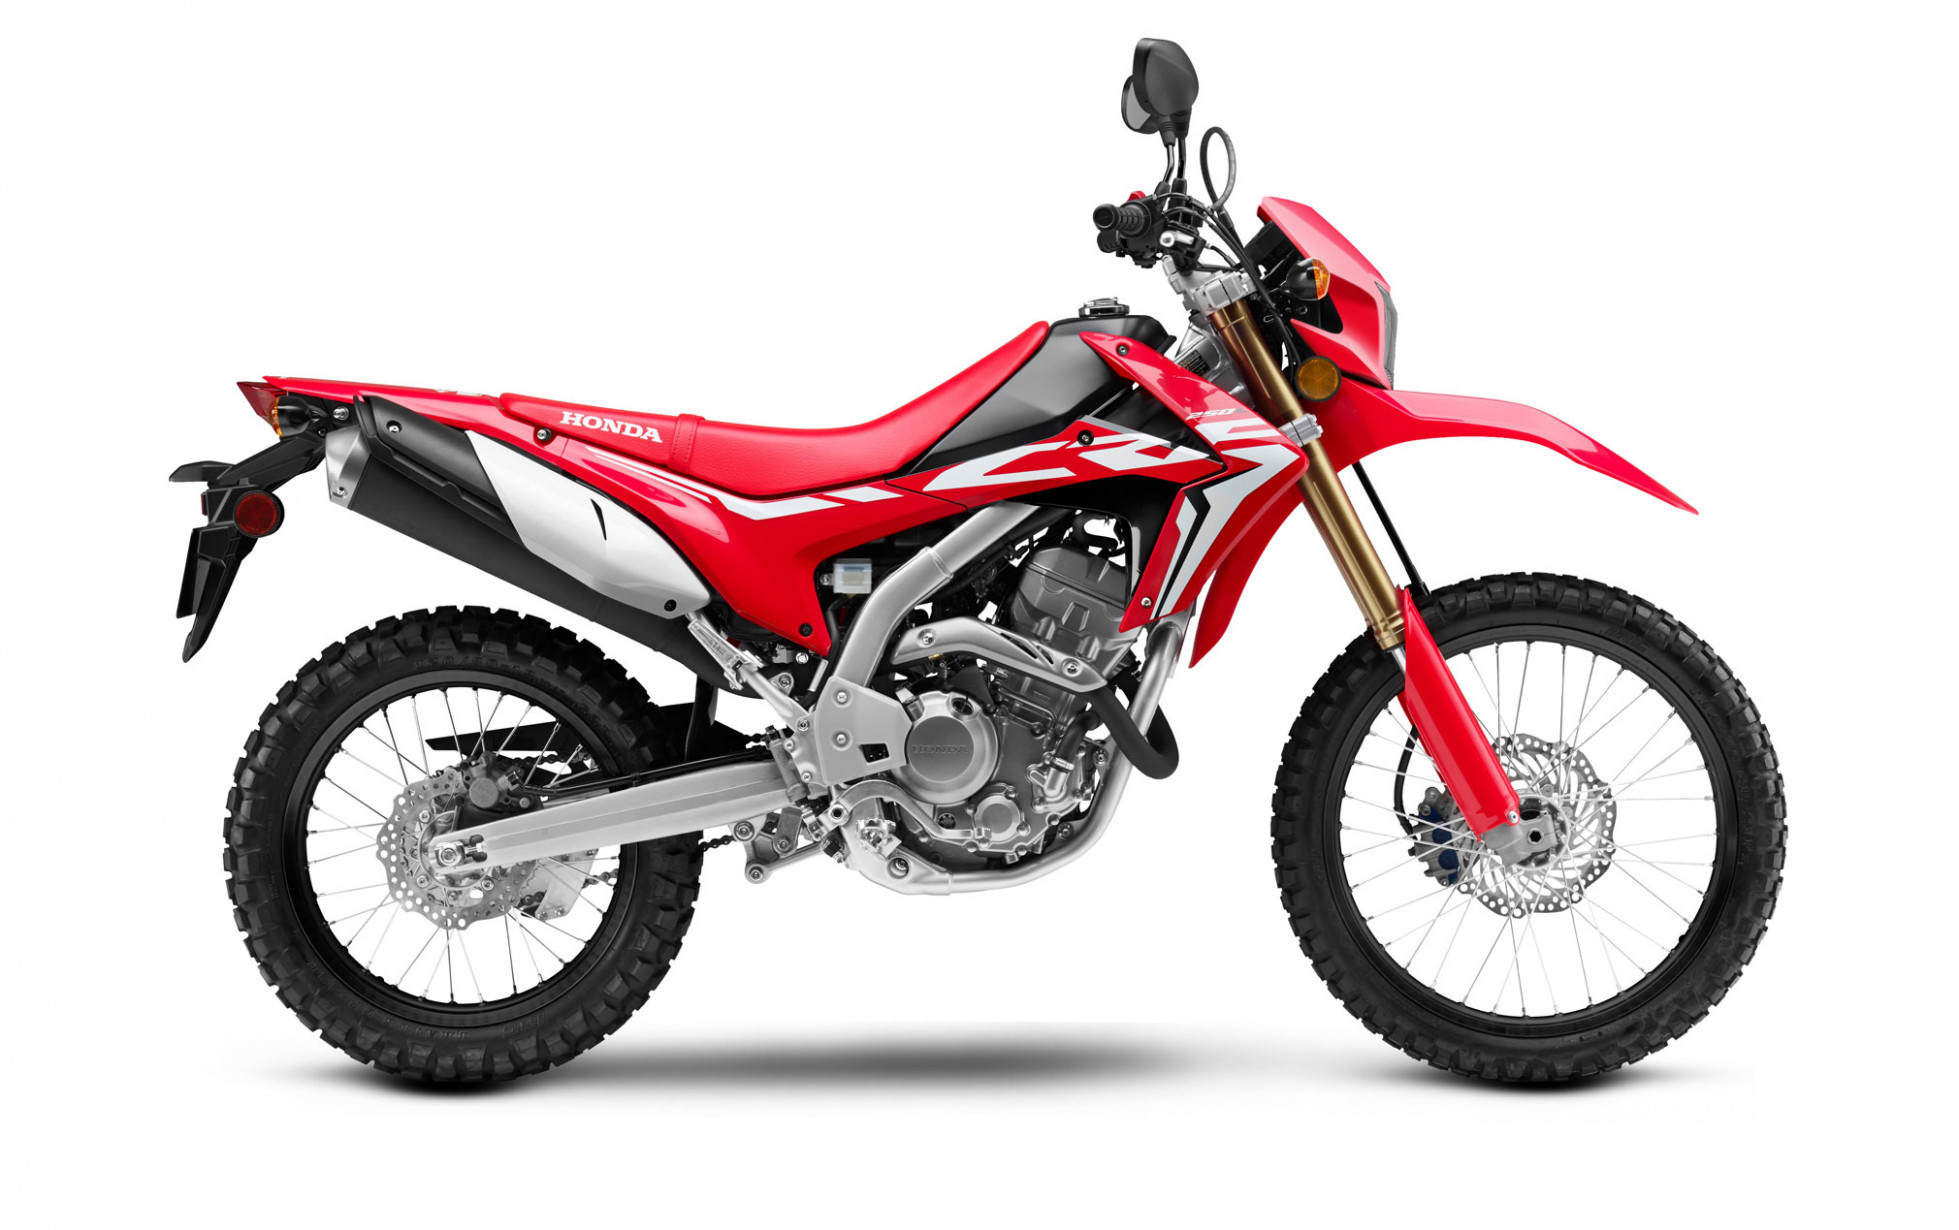 7 Honda CRF7L ABS Guide • Total Motorcycle